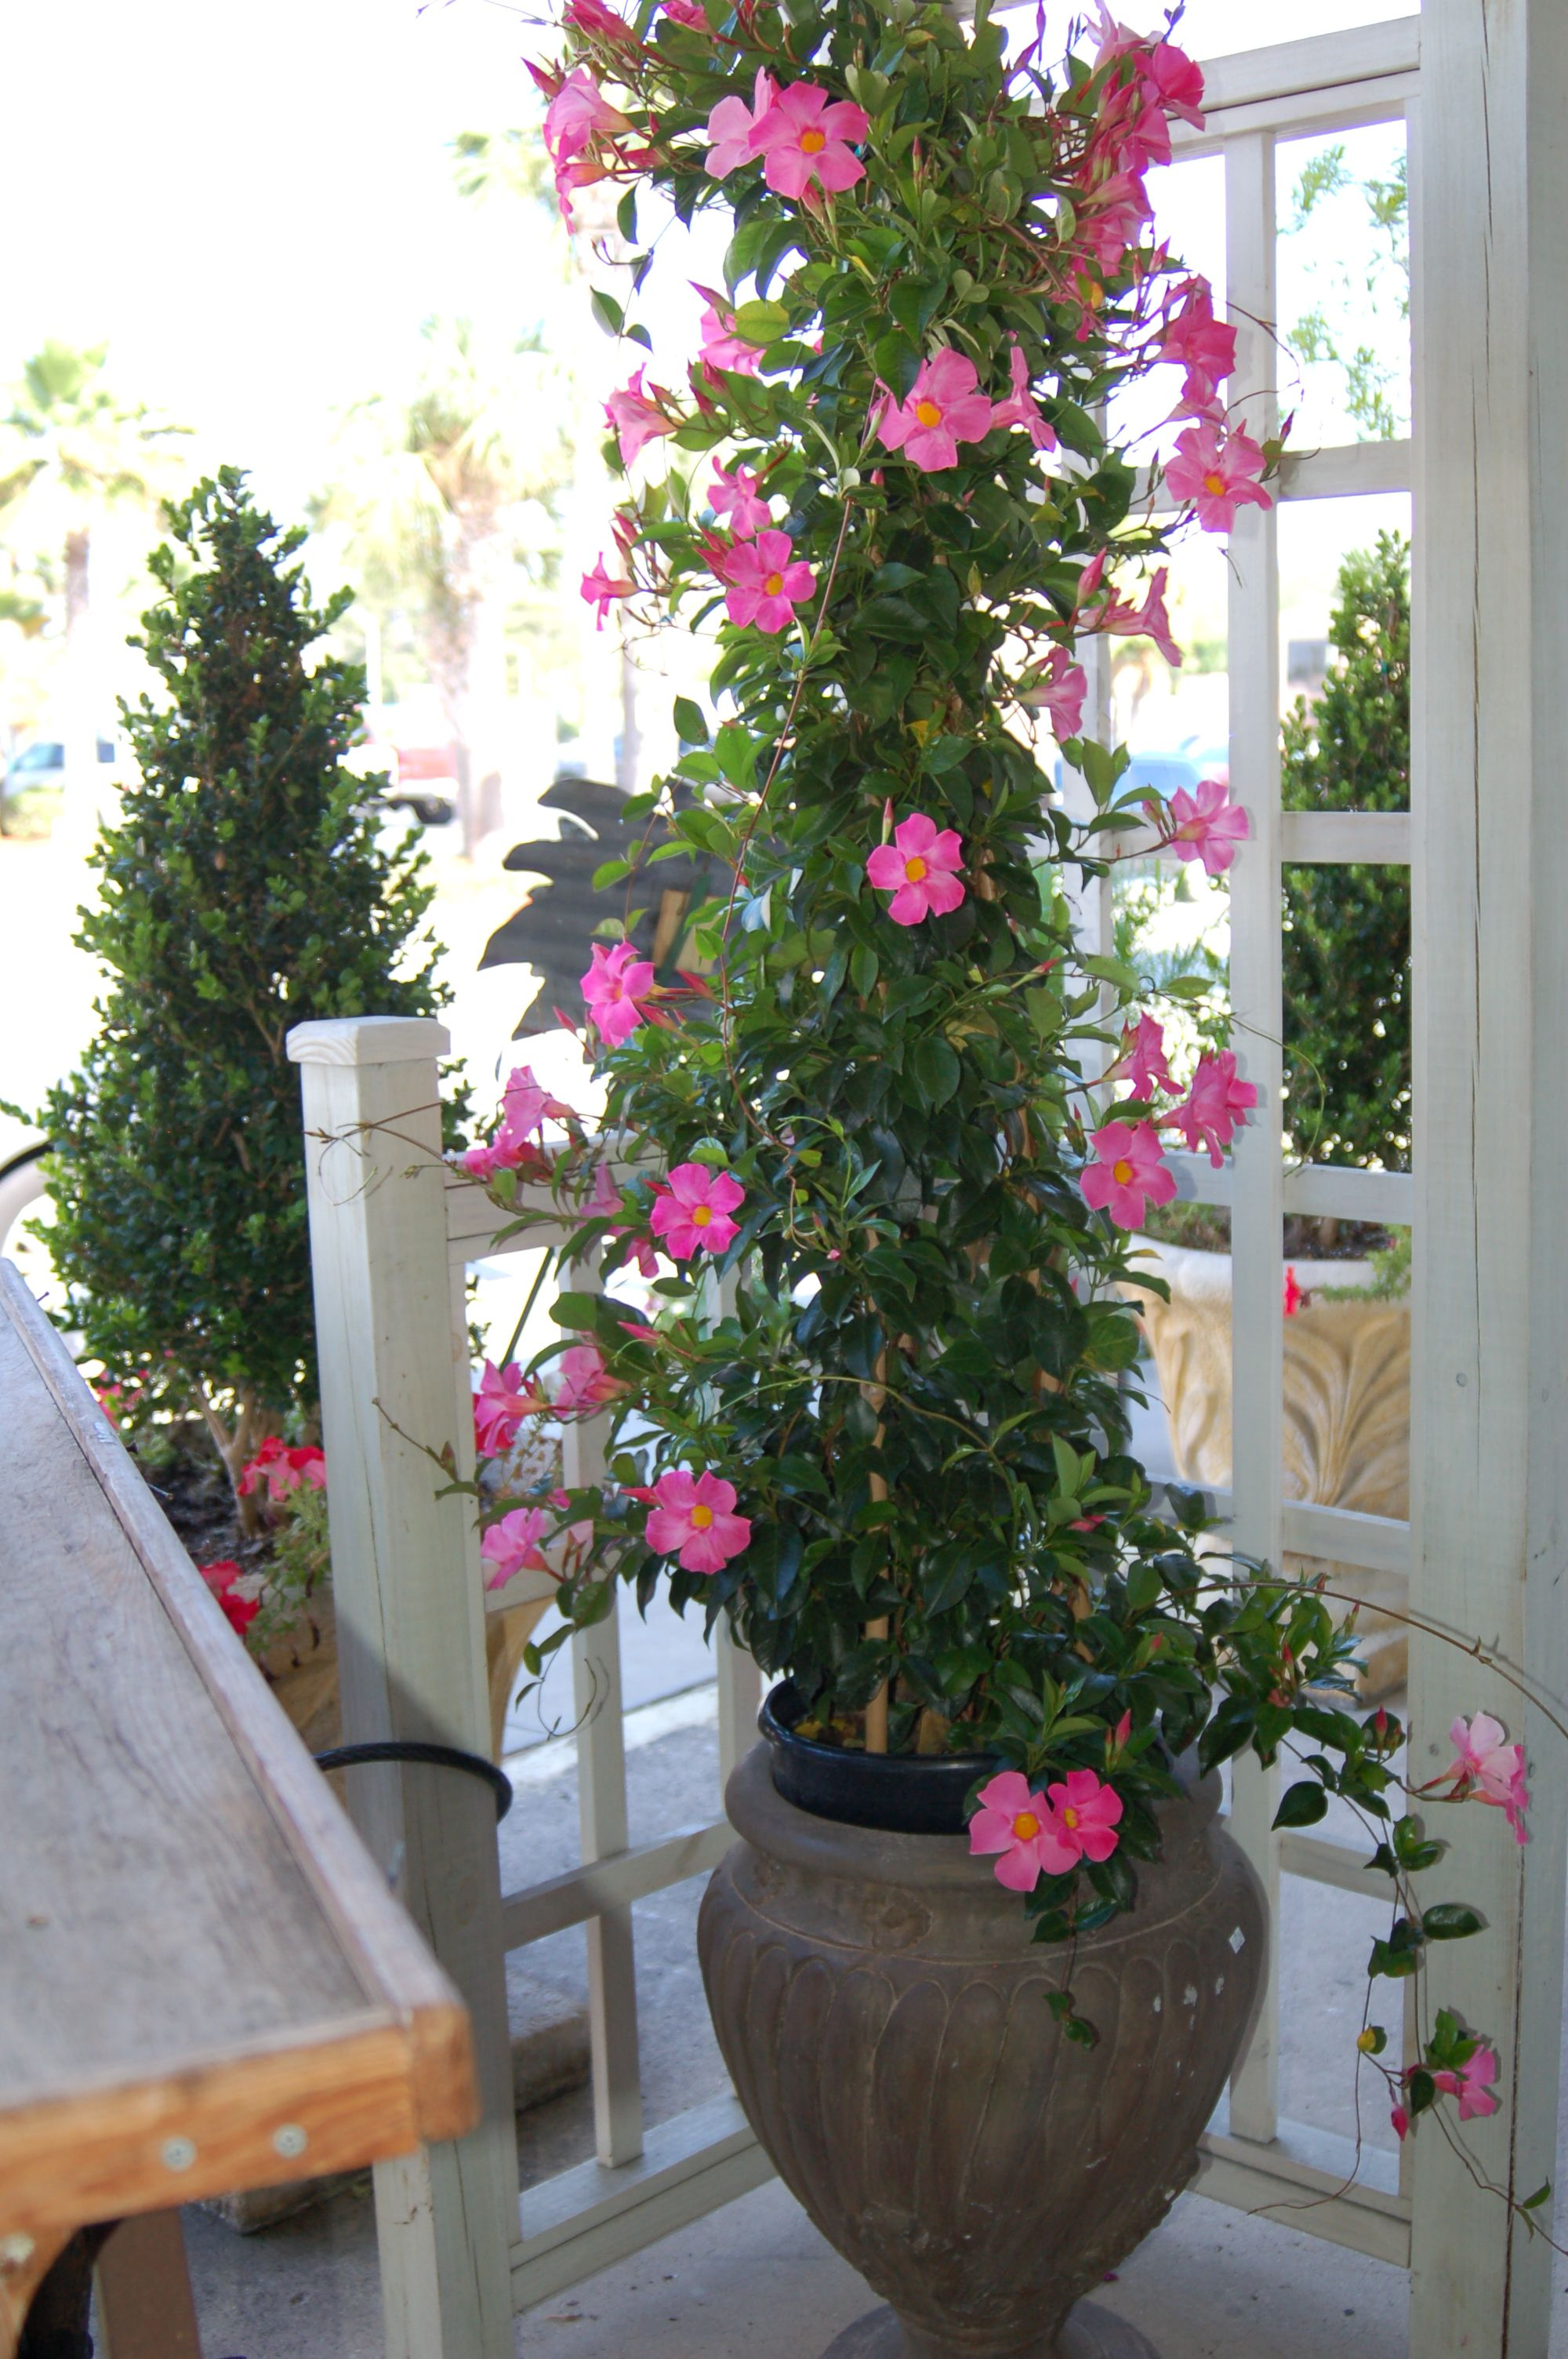 Mandevilla Vines Those Are So Beautiful I Would Love To Plant Them